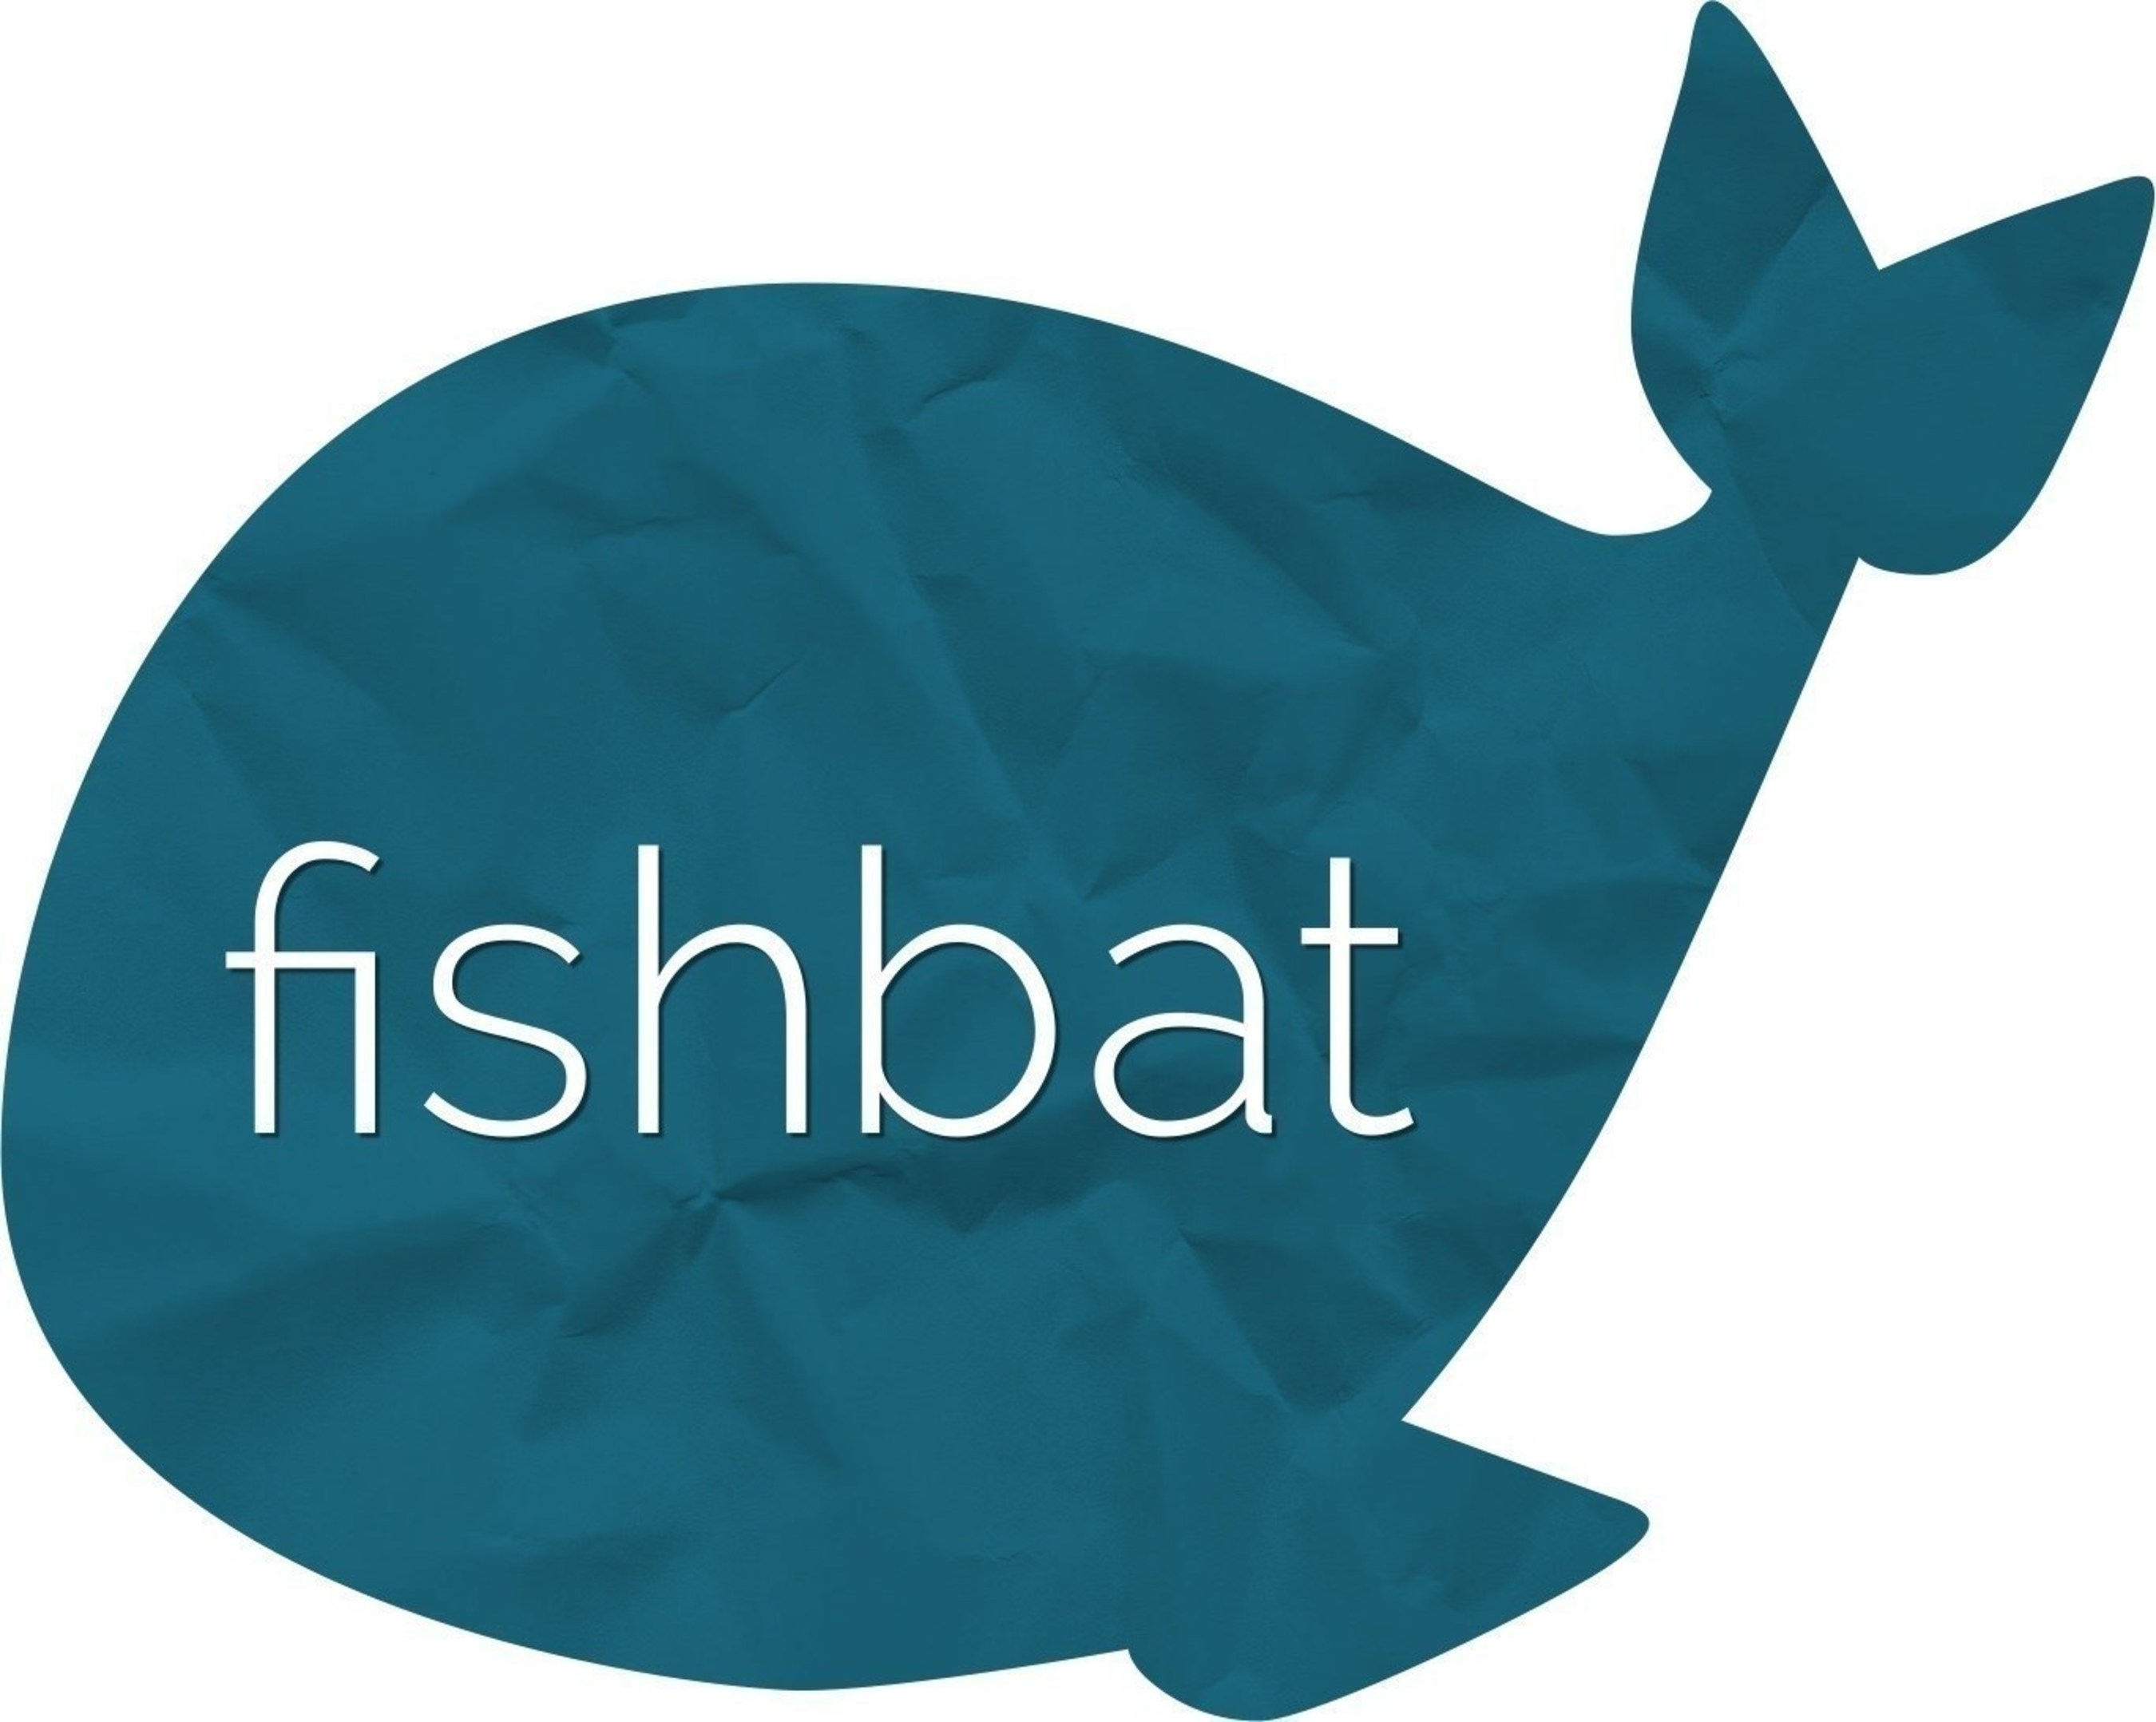 Internet Marketing Agency, fishbat, Talks About 4 Ways to Improve Consumer Retention on Websites